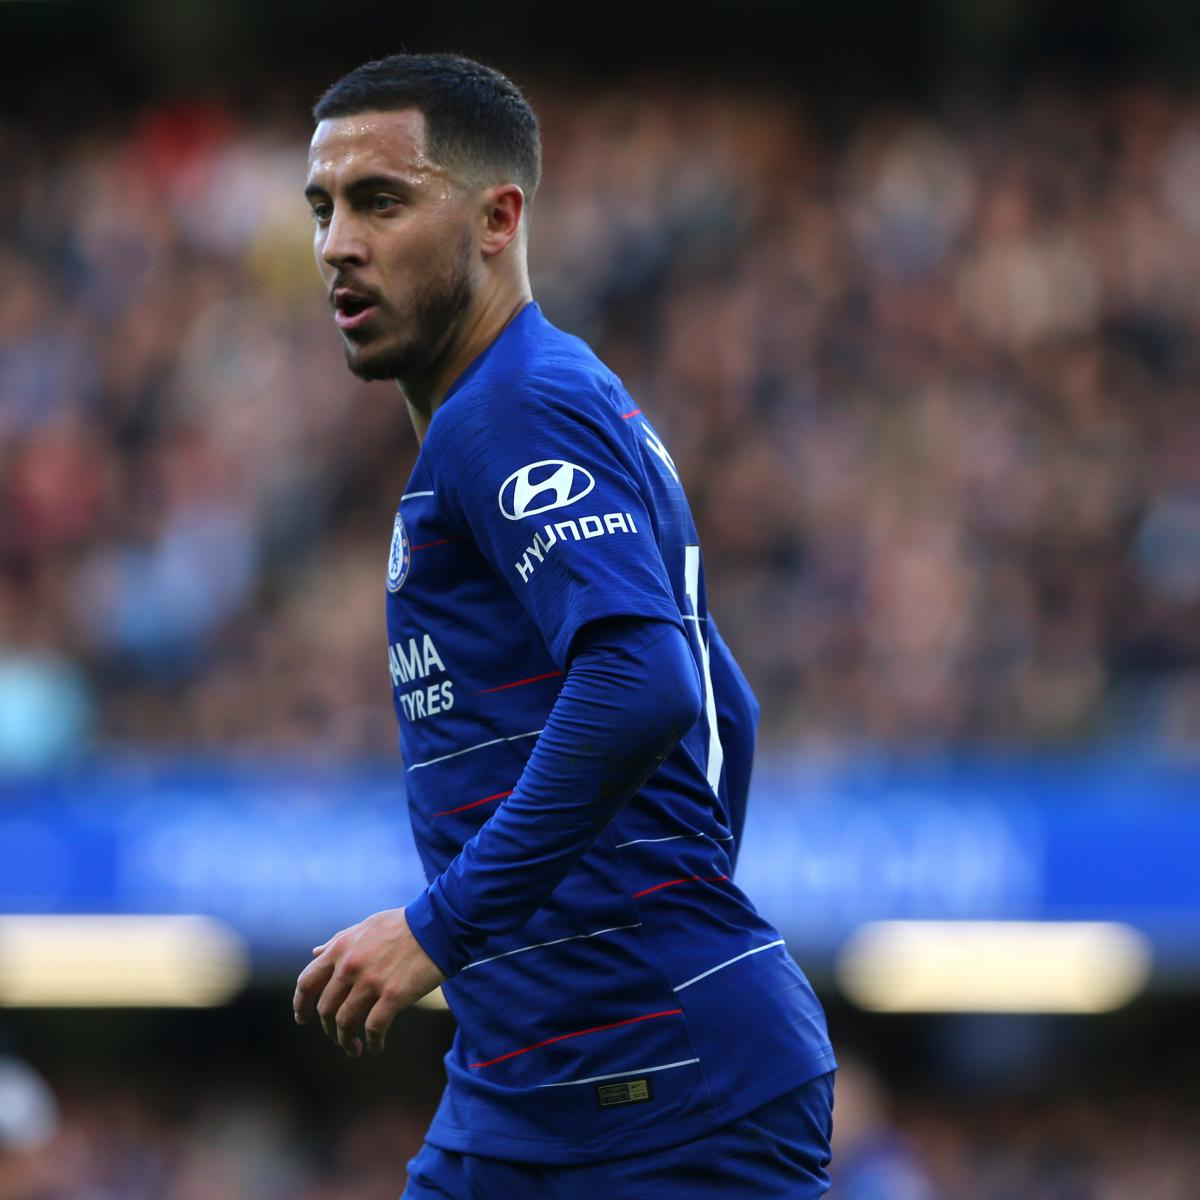 Eden Hazard Says He Is 'Tired' but 'Happy to Play' for Chelsea After World Cup